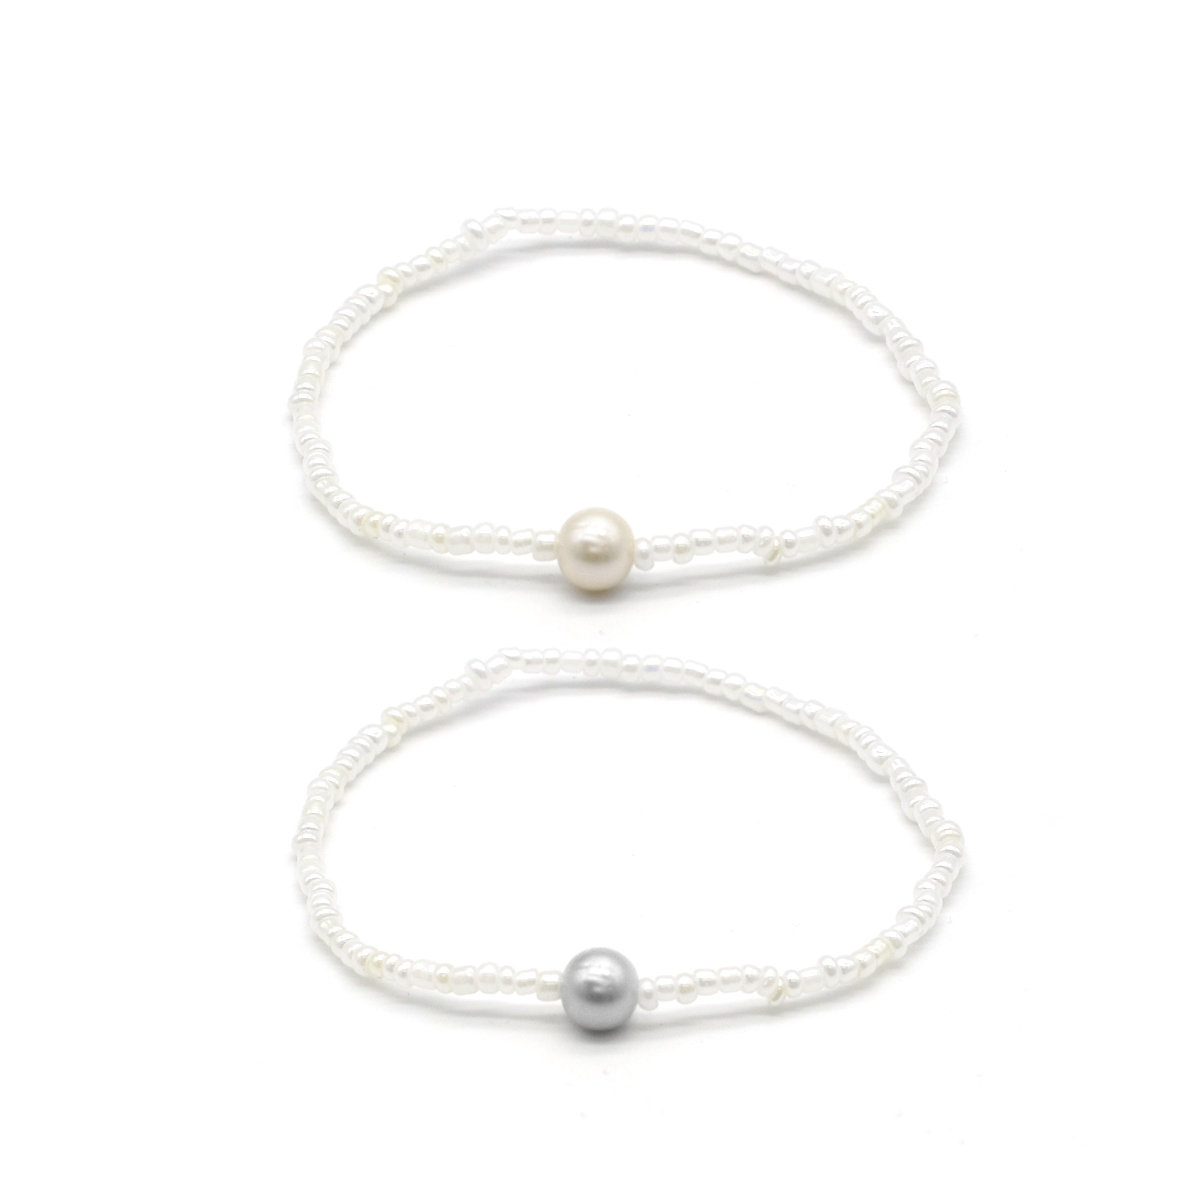 Silm P- 6-7mm fresh water pearl with little bead bracelet (2pcs set)